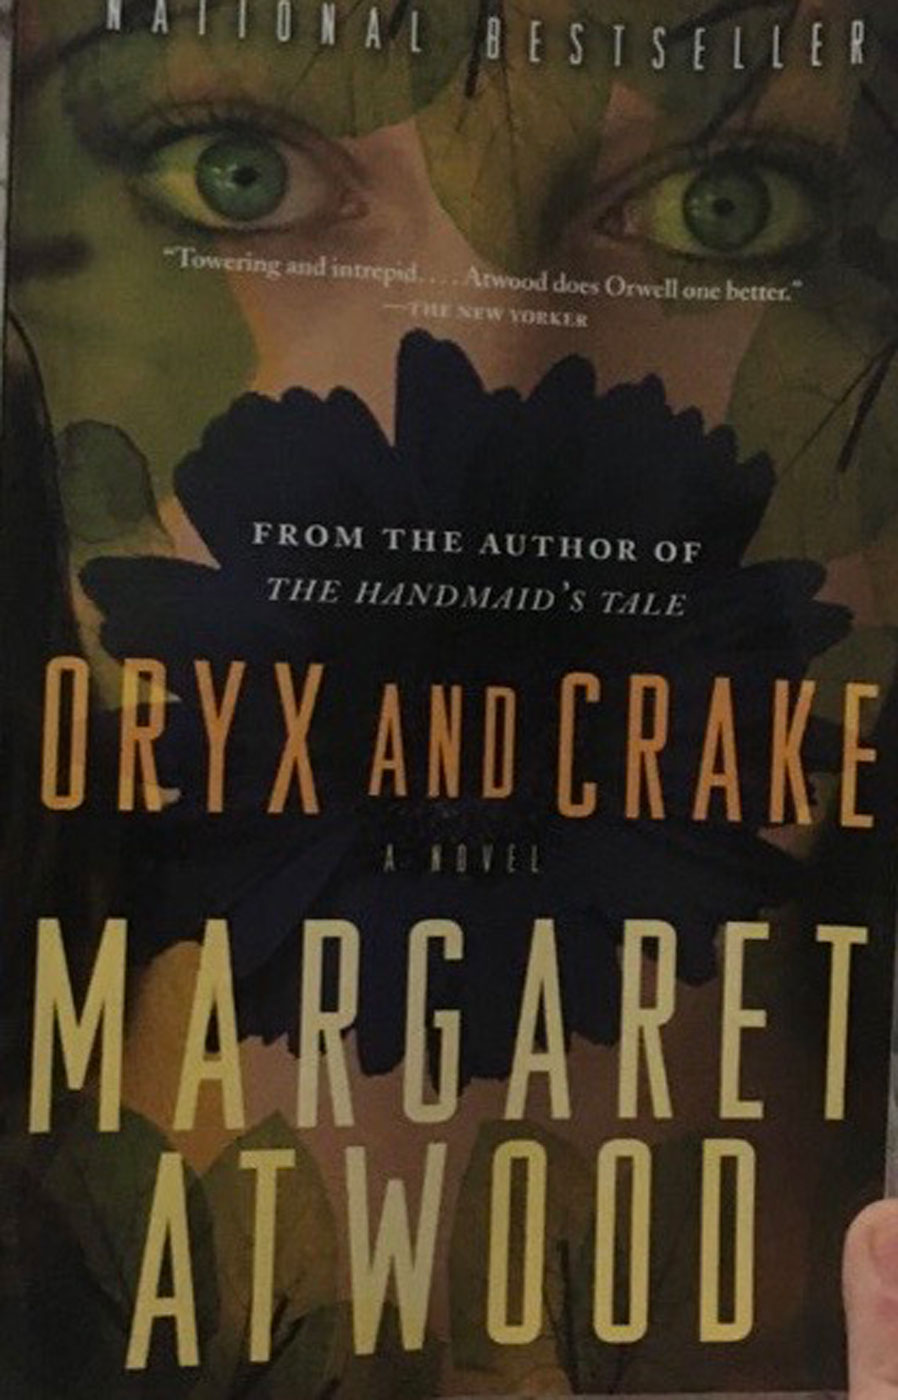 #033 Atwood: An Excerpt from Oryx and Crake